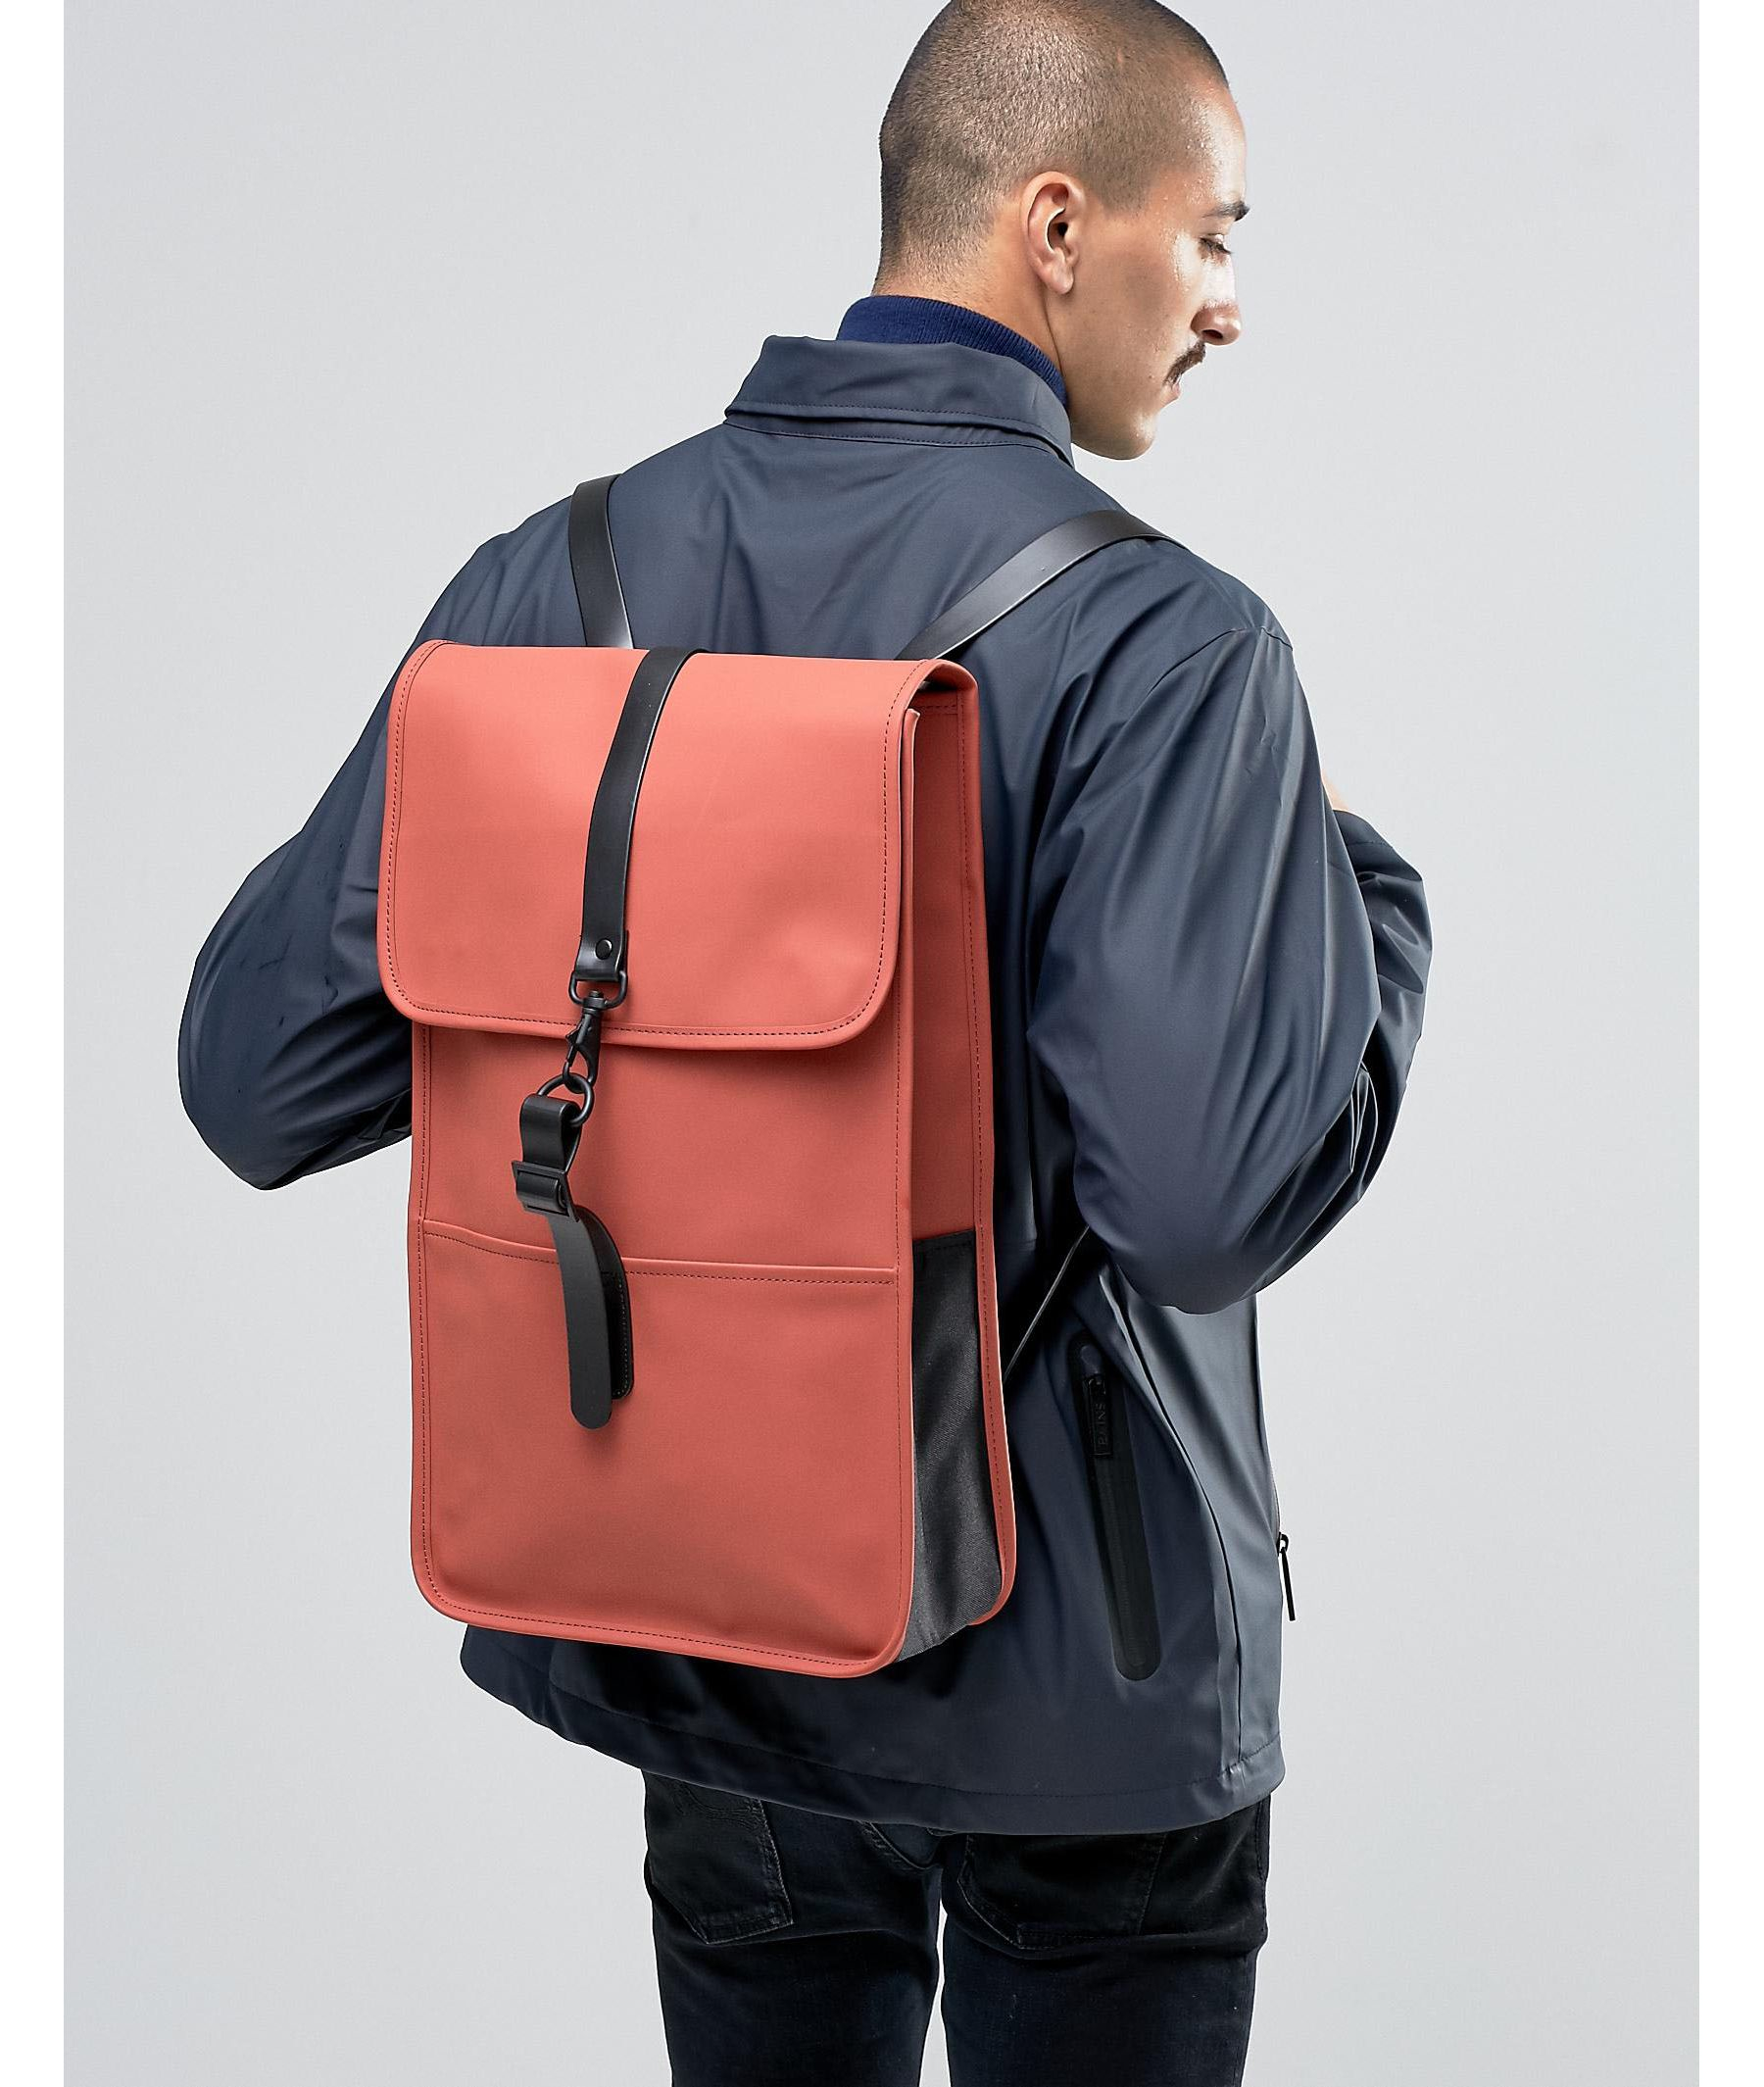 3bfcf705f498 Lyst - Rains Backpack In Rust for Men